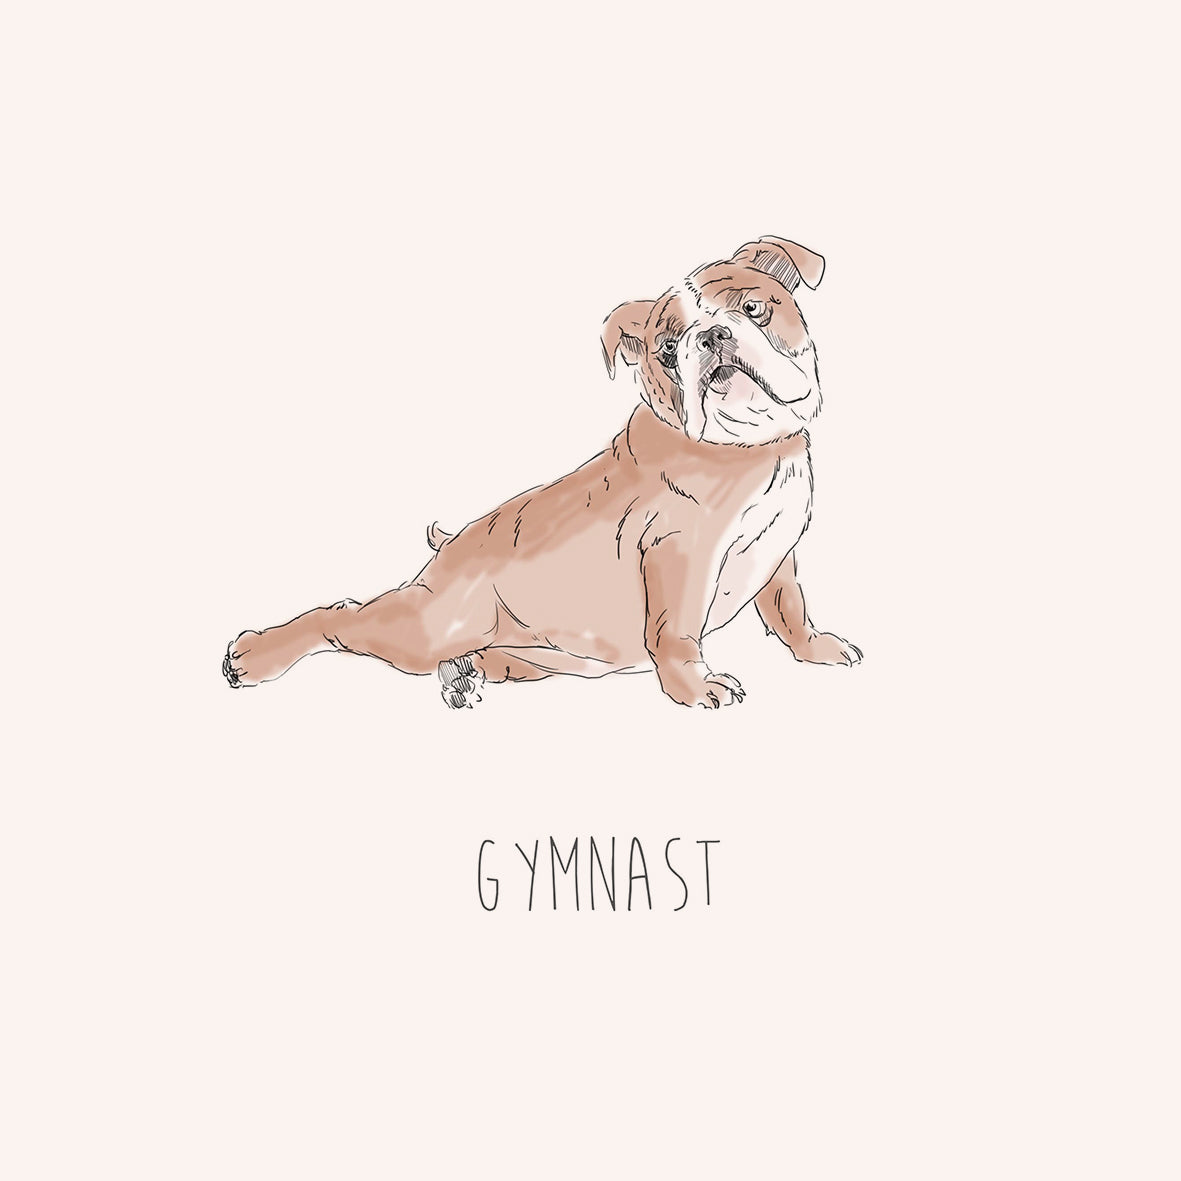 Gymnast – English Bulldog